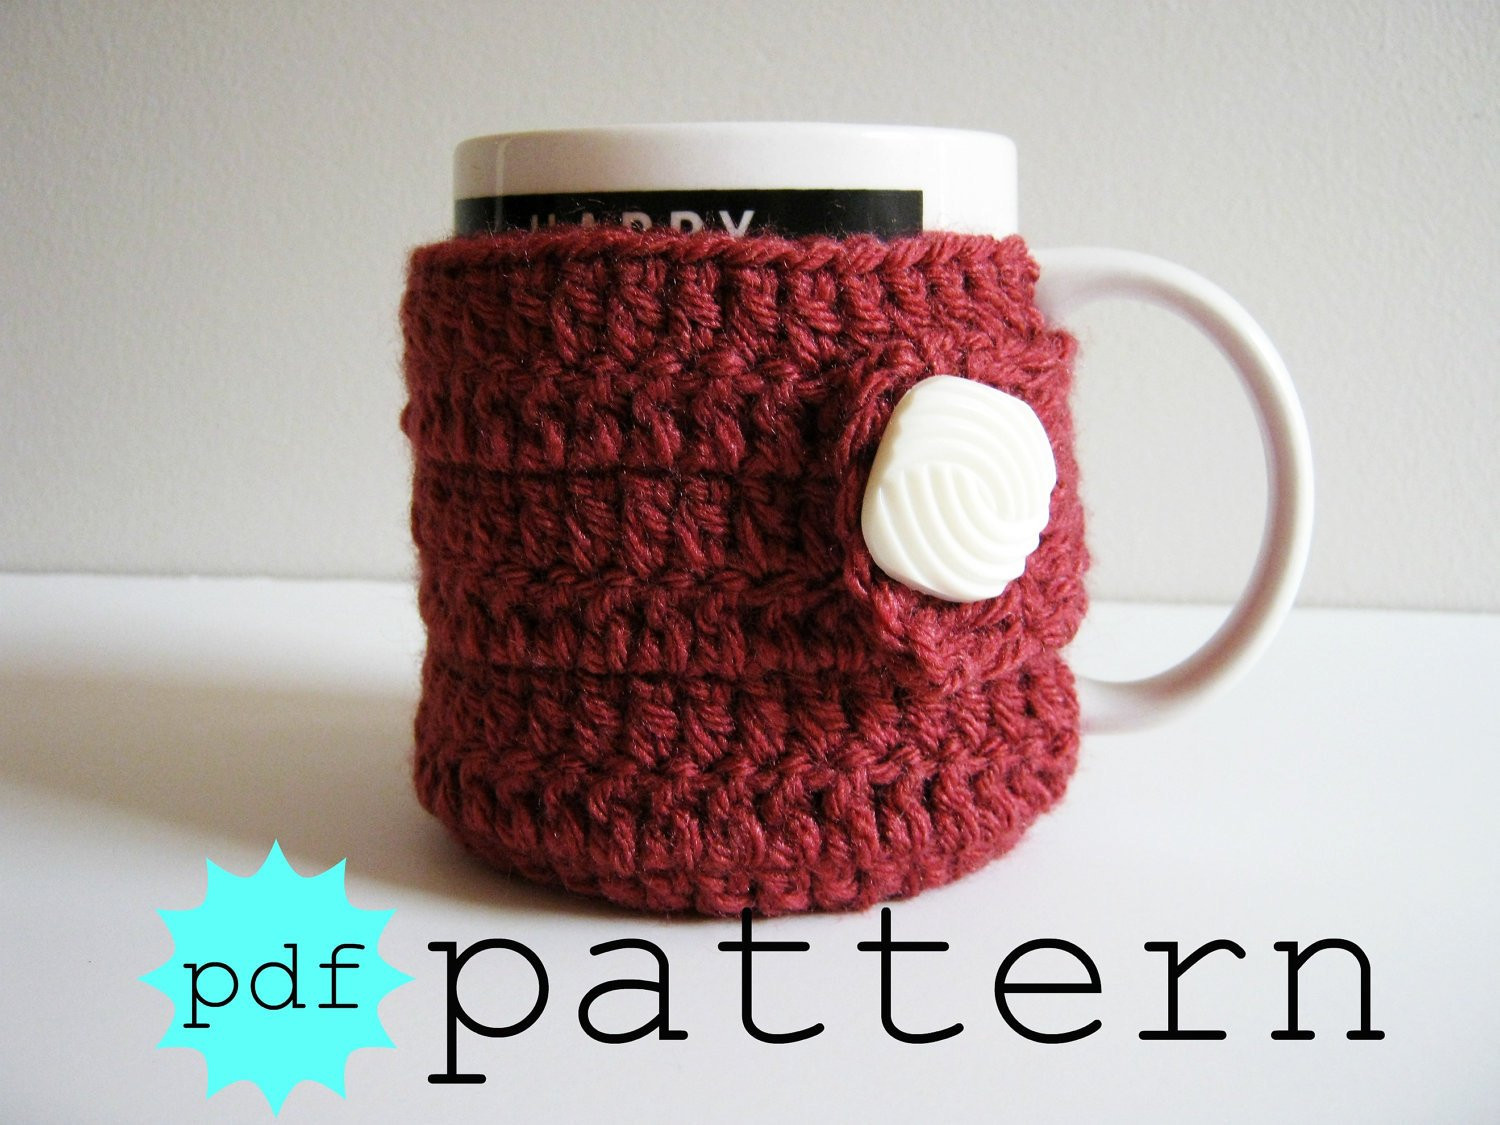 Crochet Coffee Cup Cozy Luxury Pdf Crochet Pattern Coffee Mug Cozy with button by Of Crochet Coffee Cup Cozy Luxury Happy Holidays Handmade Gift Idea Crochet Heart Coffee